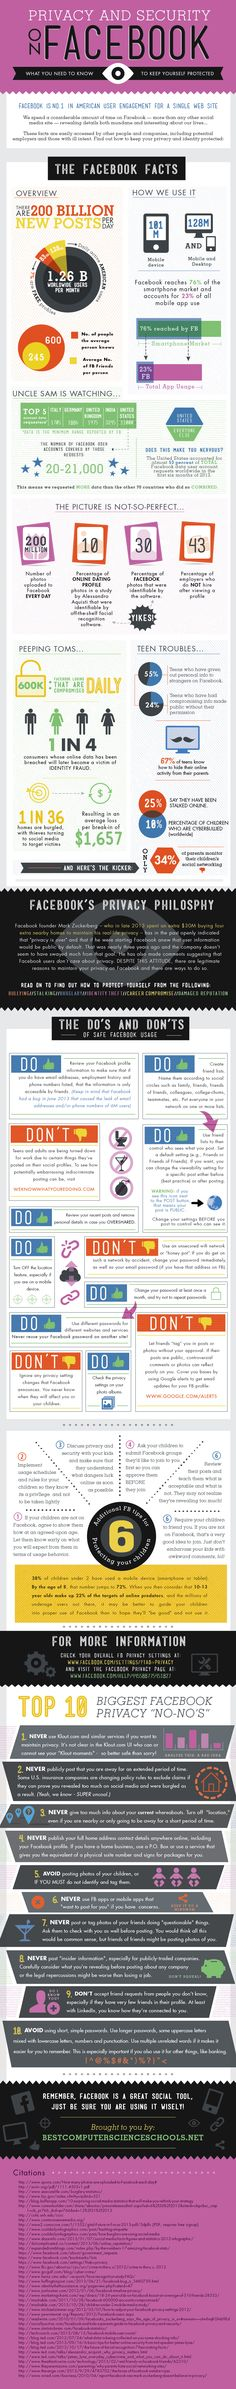 Students should not only understand how to present themselves on Facebook with proper etiquette, but understand how to avoid actions that may compromise personal data. Teachers must also make parents understand the potential dangers and how to spot them on their child's profile. SocialTimes provides a great summary of this important information in a infographic format.